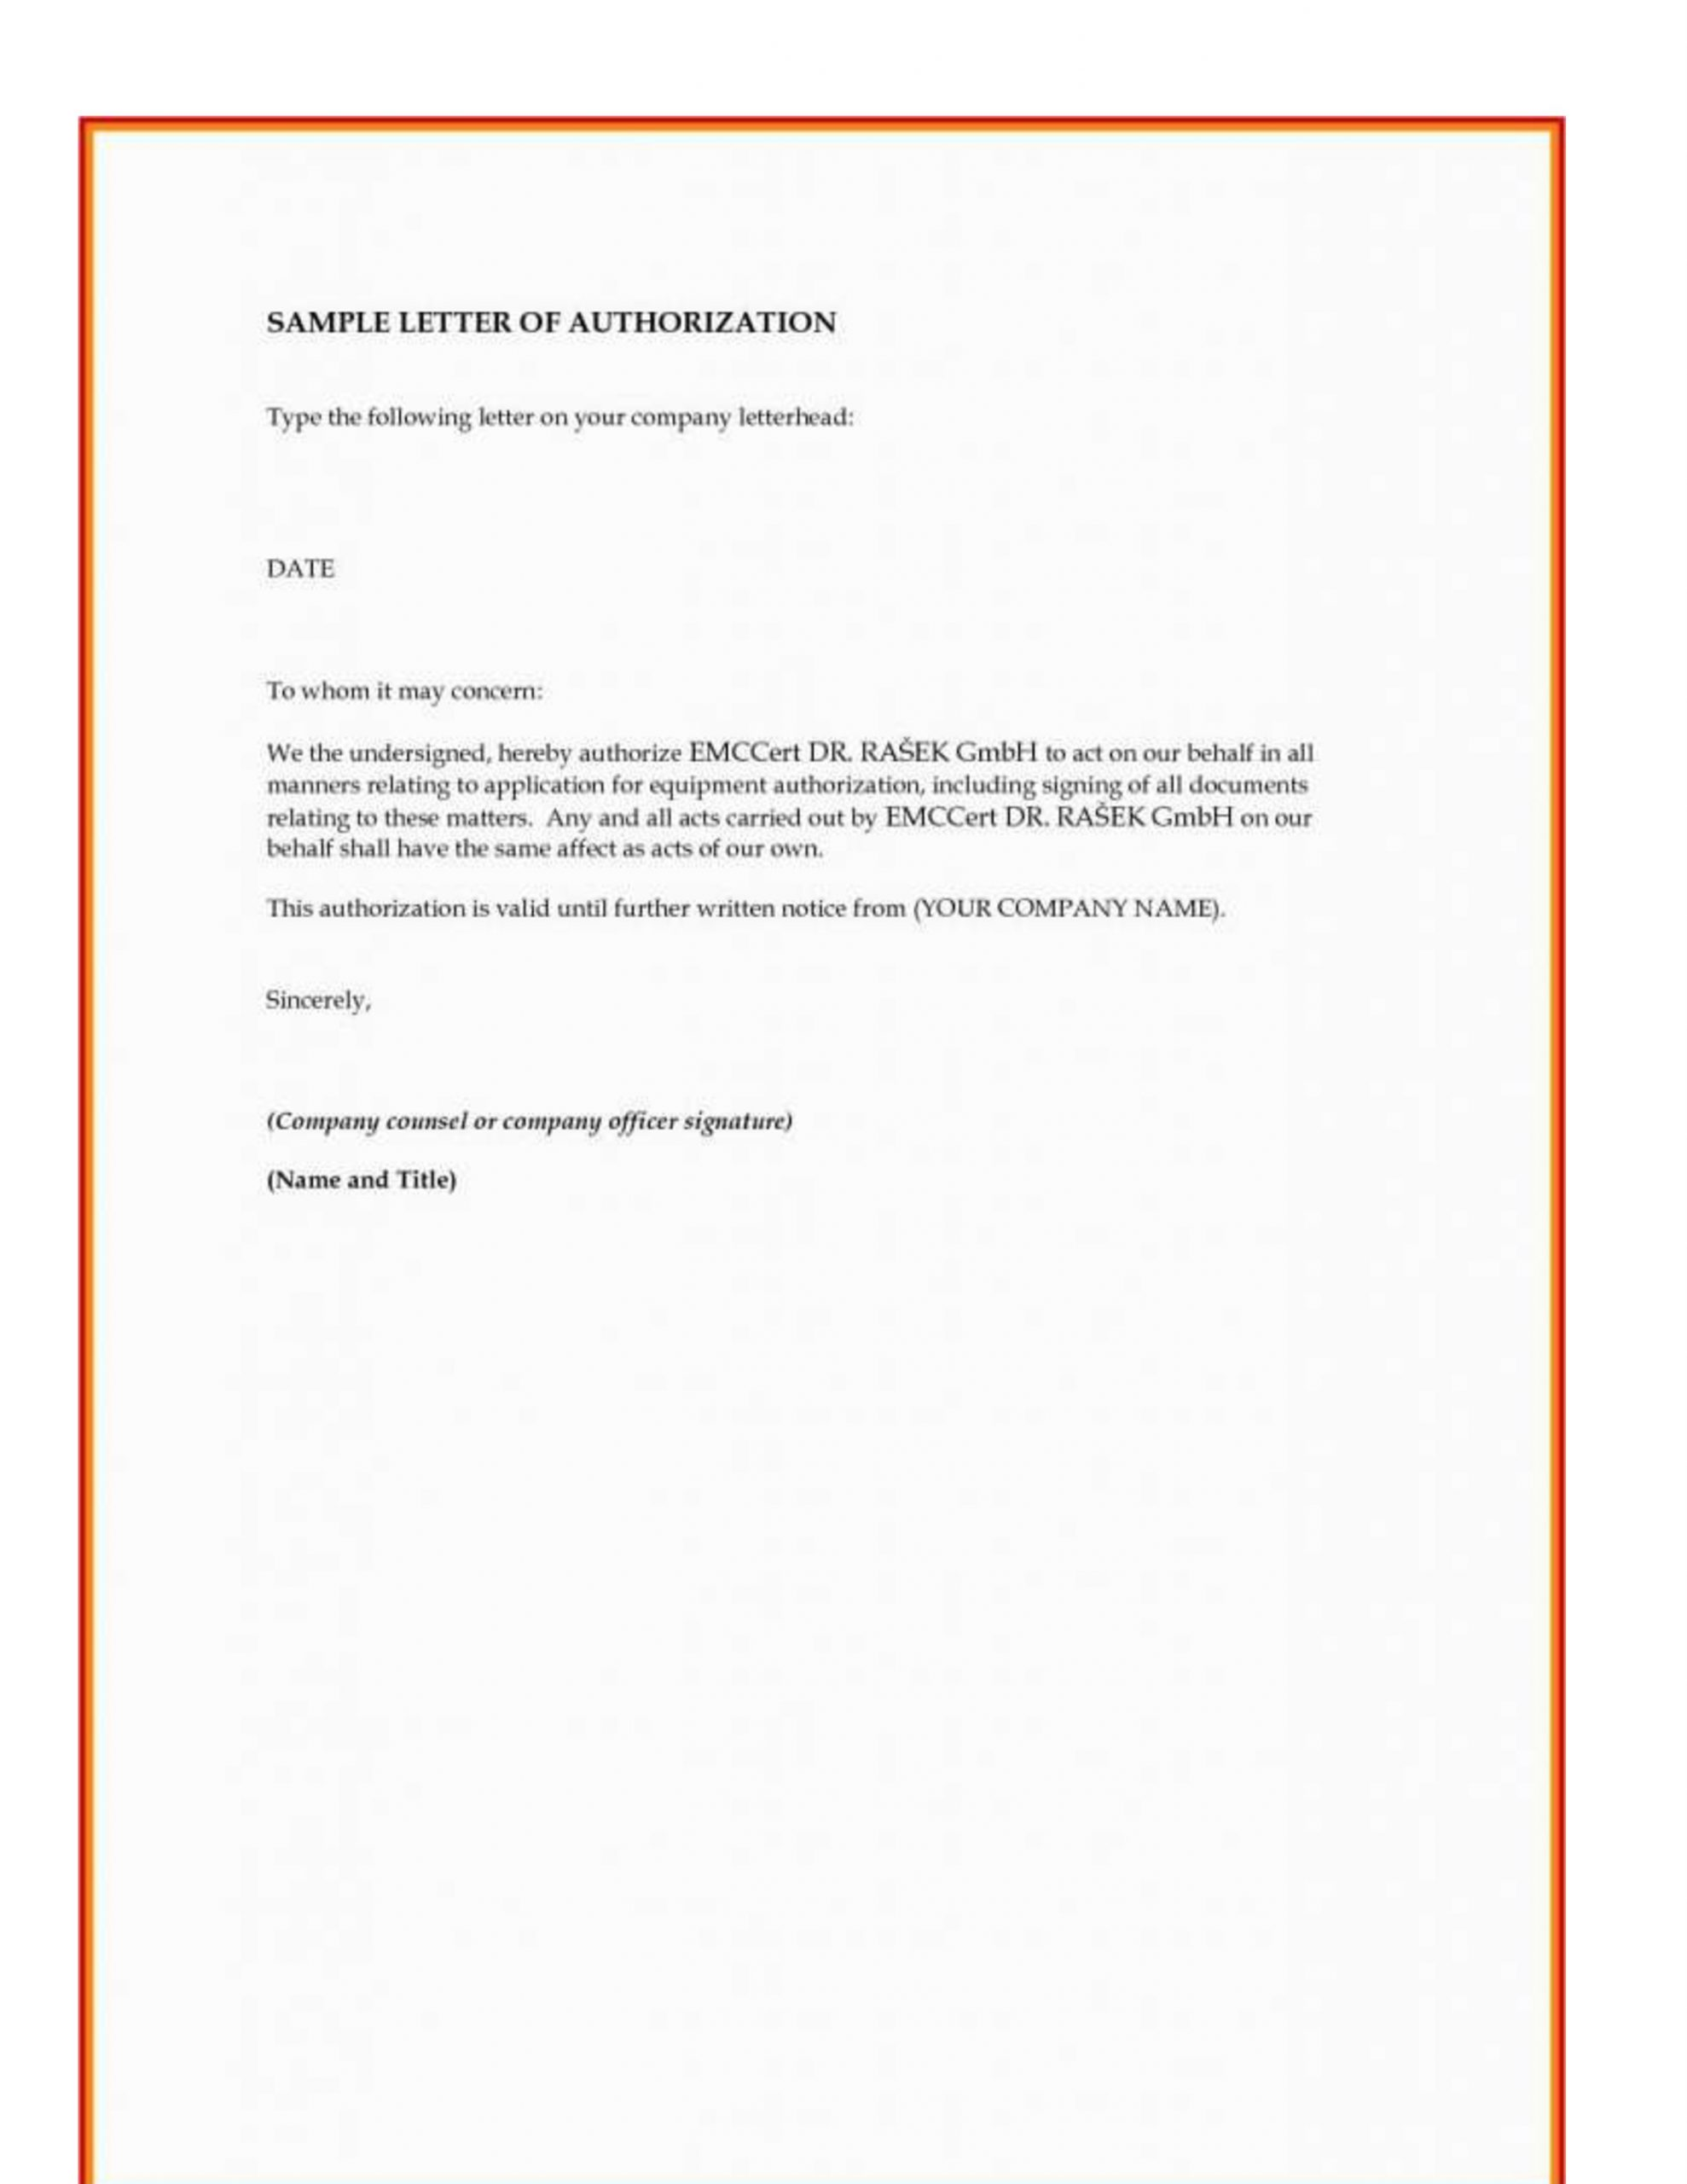 Authorization Letter Sample To Process Documents from authorizationletter.org